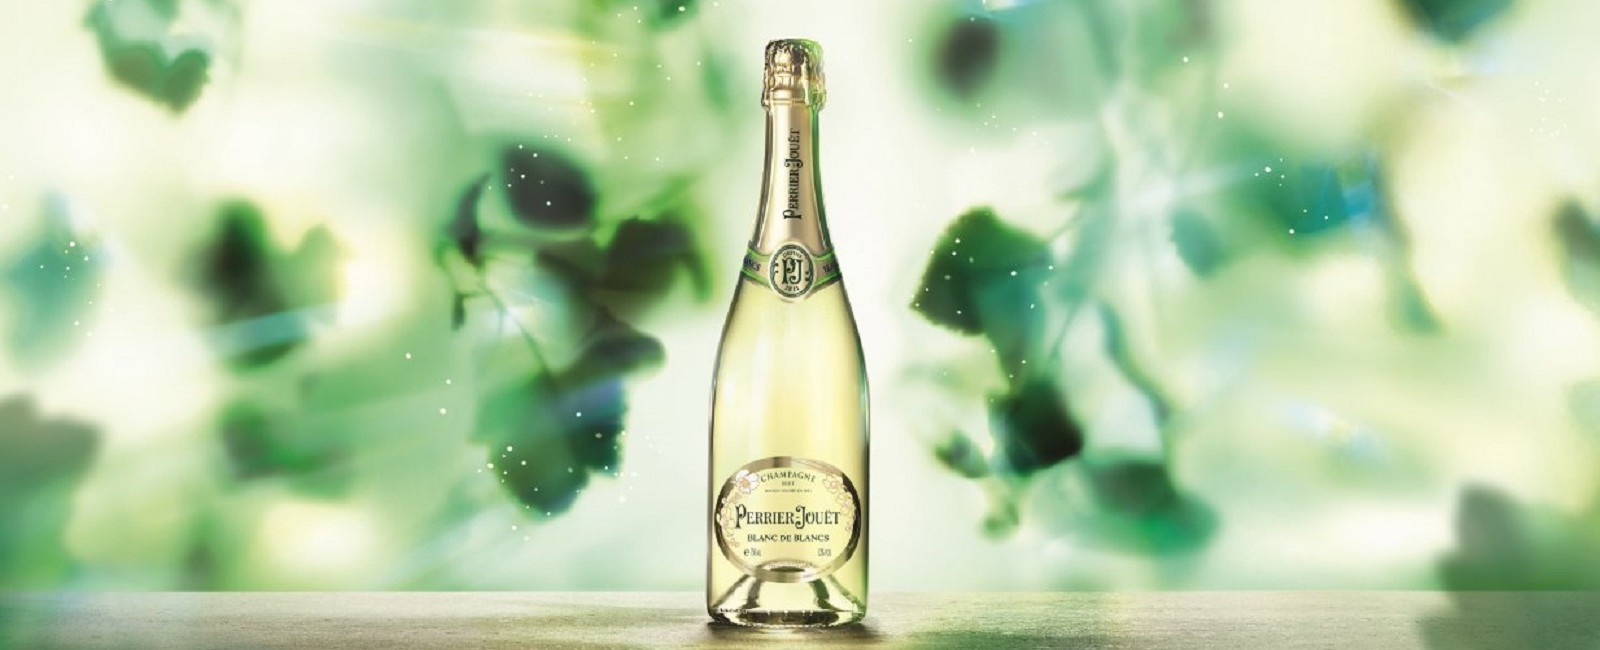 PERRIER-JOUËT LAUNCHES THE PERRIER-JOUËT BLANC DE BLANCS